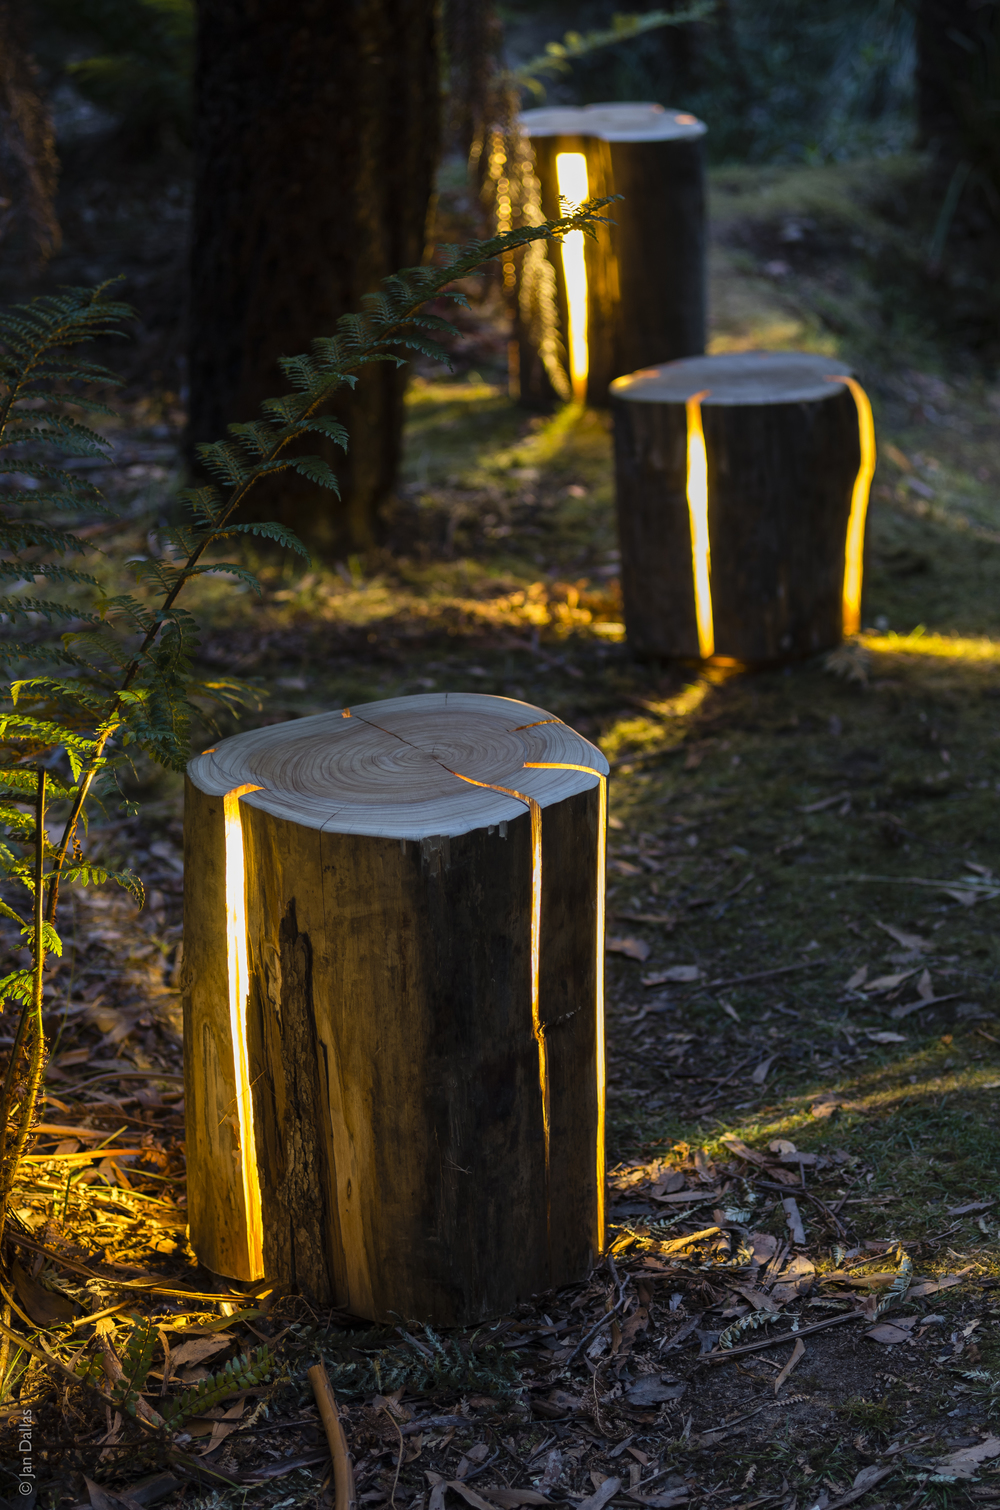 LAMP2-STUMP-DuncanMeerding-photoJanDallas1.jpg